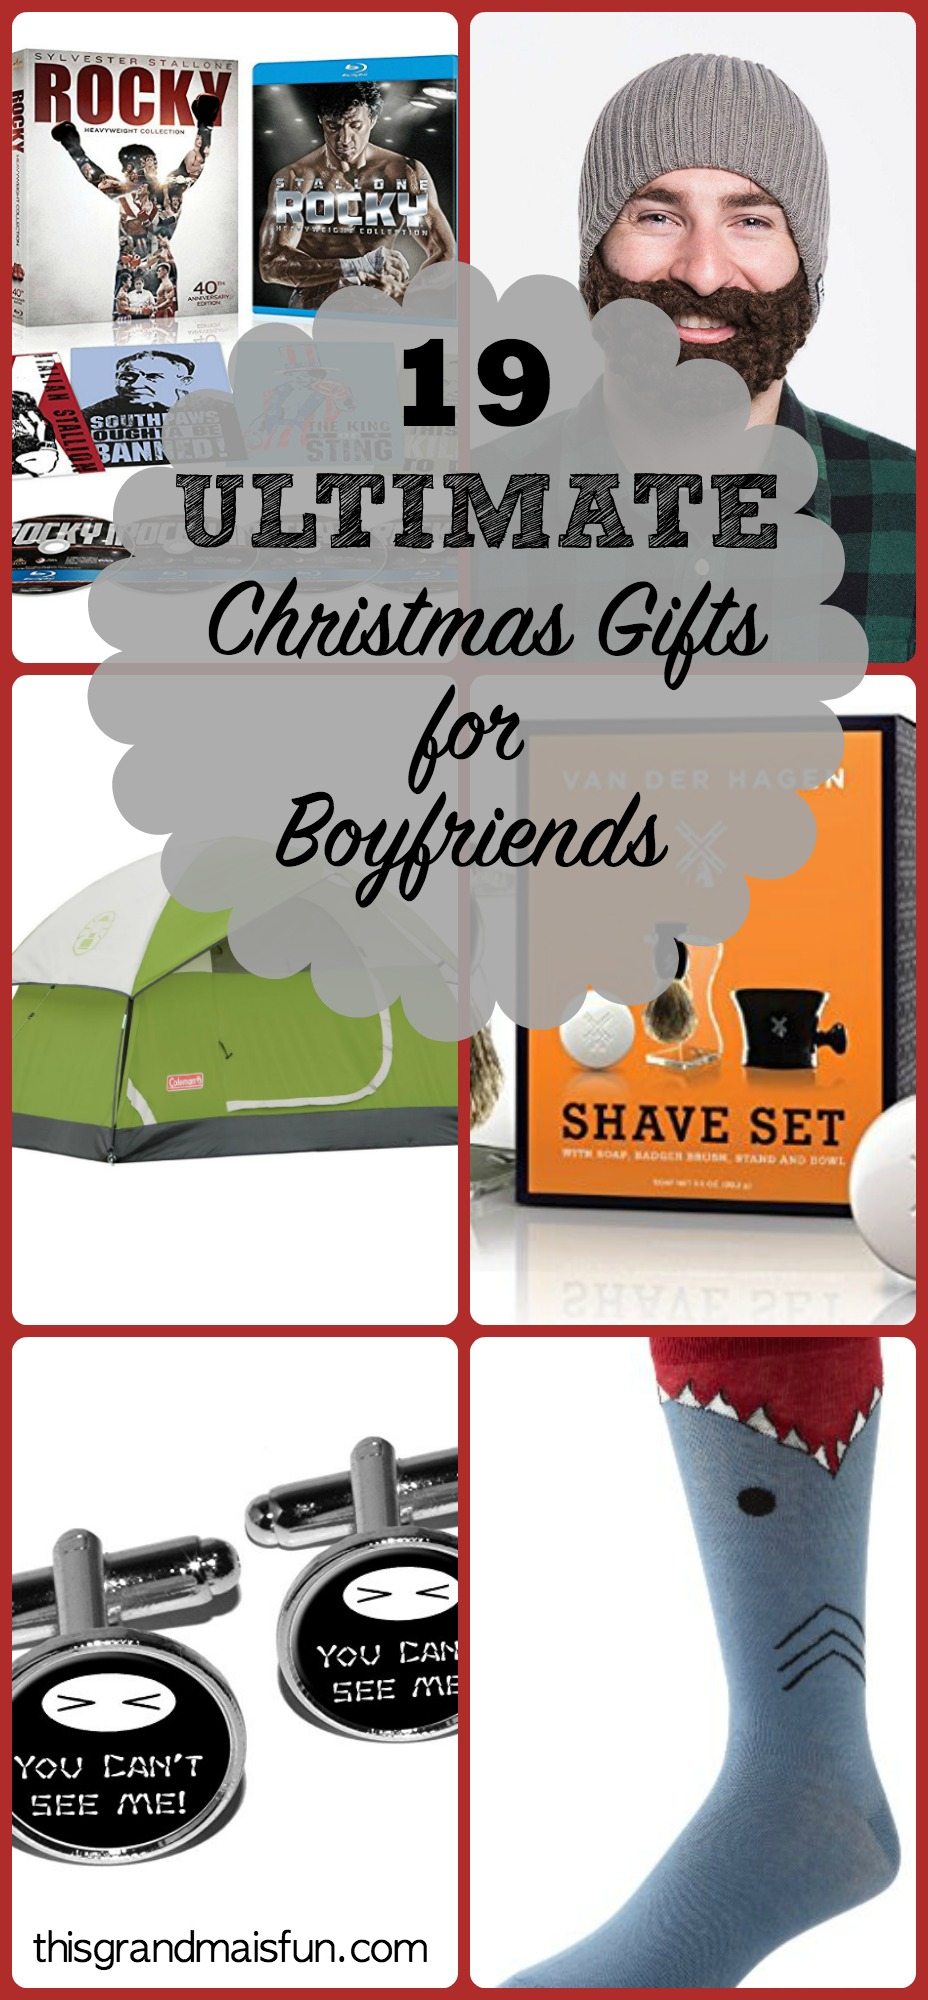 christmasgiftsforboyfriends